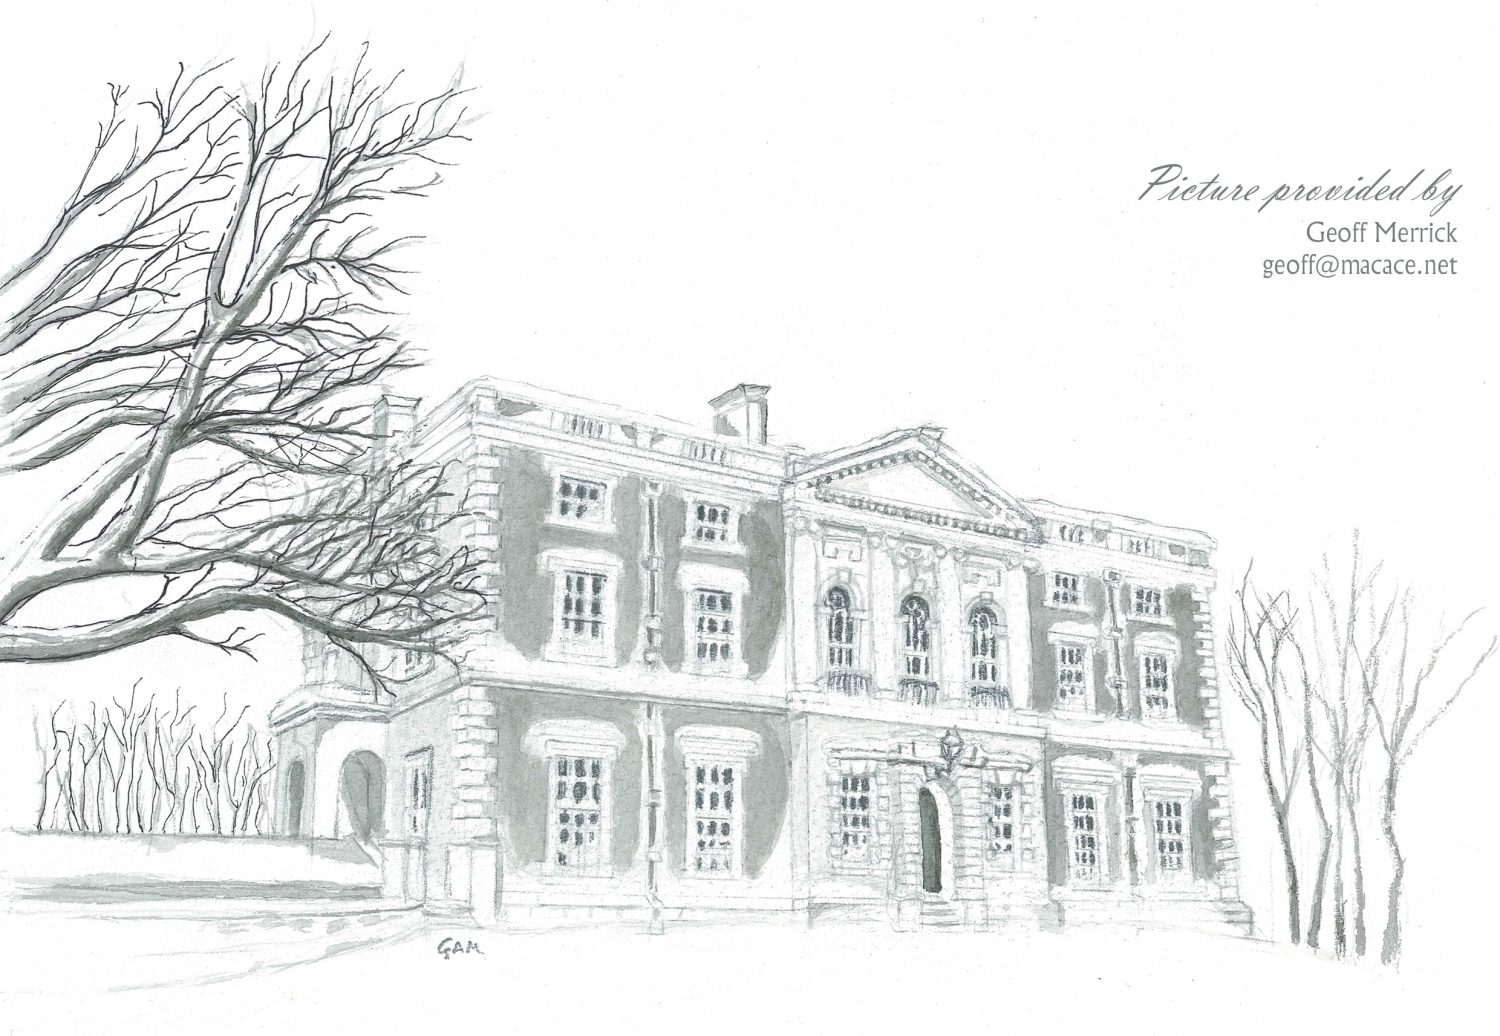 Merley House Winter Sketch